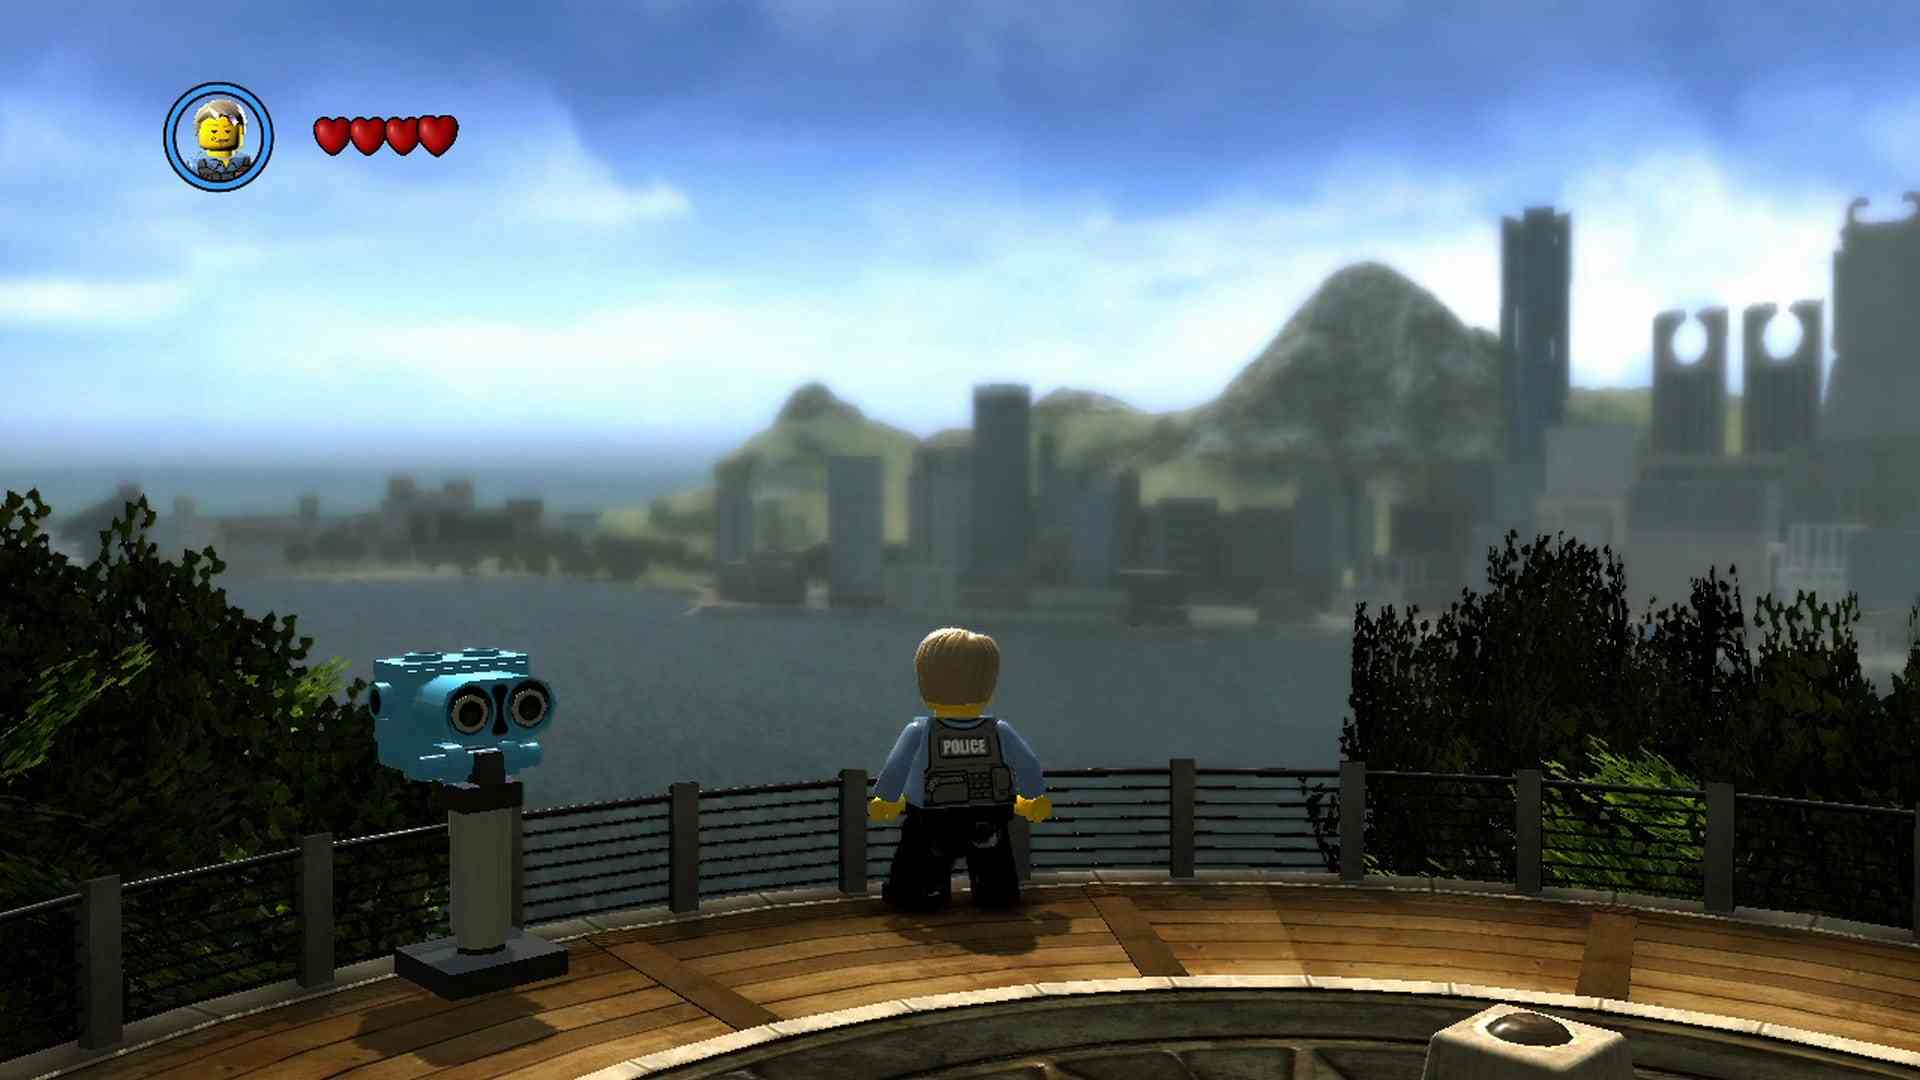 LEGO City Undercover (Wii U) Review - COGconnected